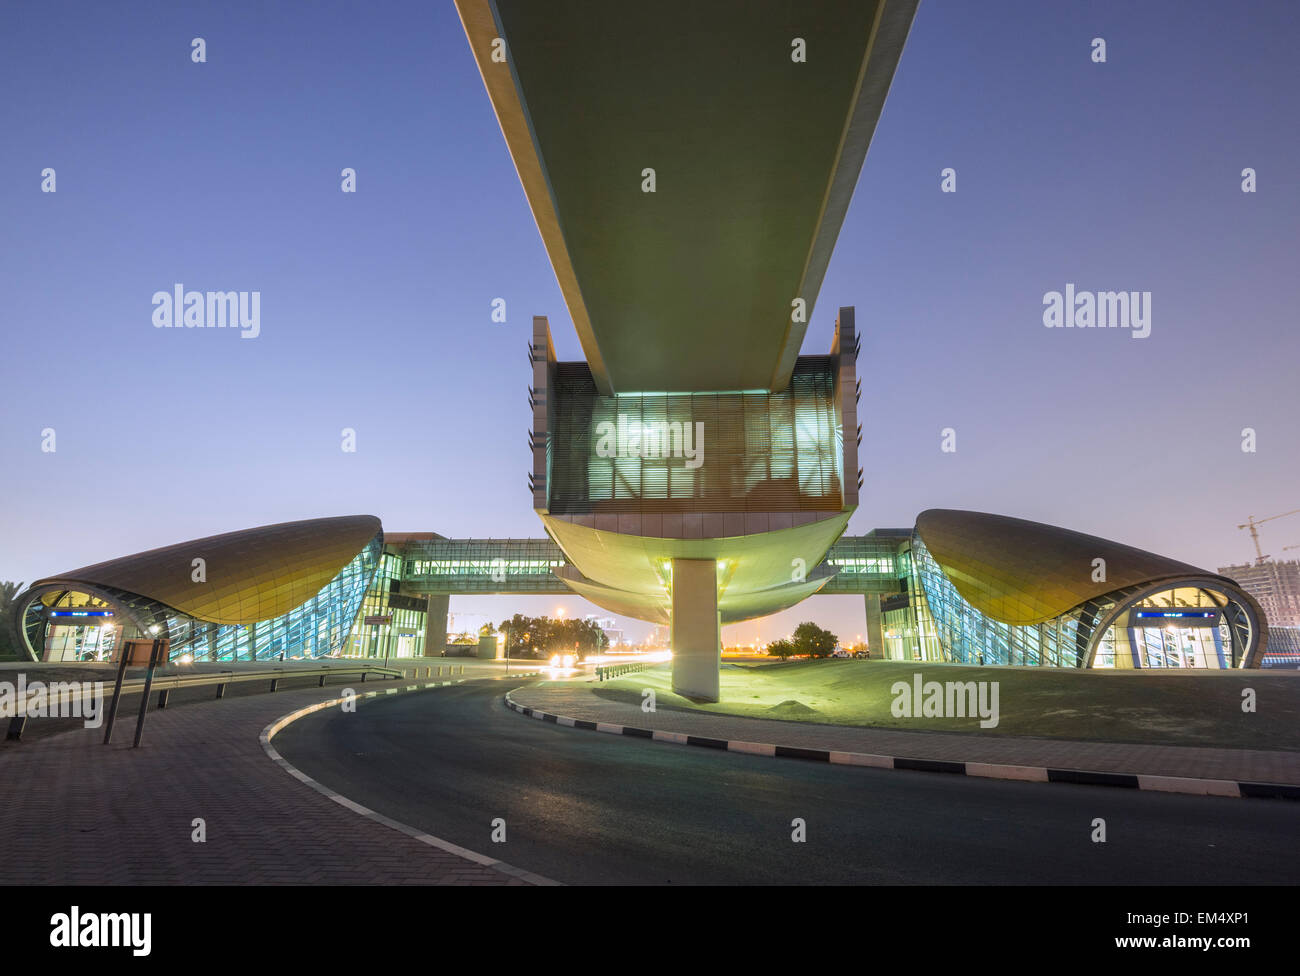 Modern metro railway station at night in Dubai United Arab Emirates - Stock Image